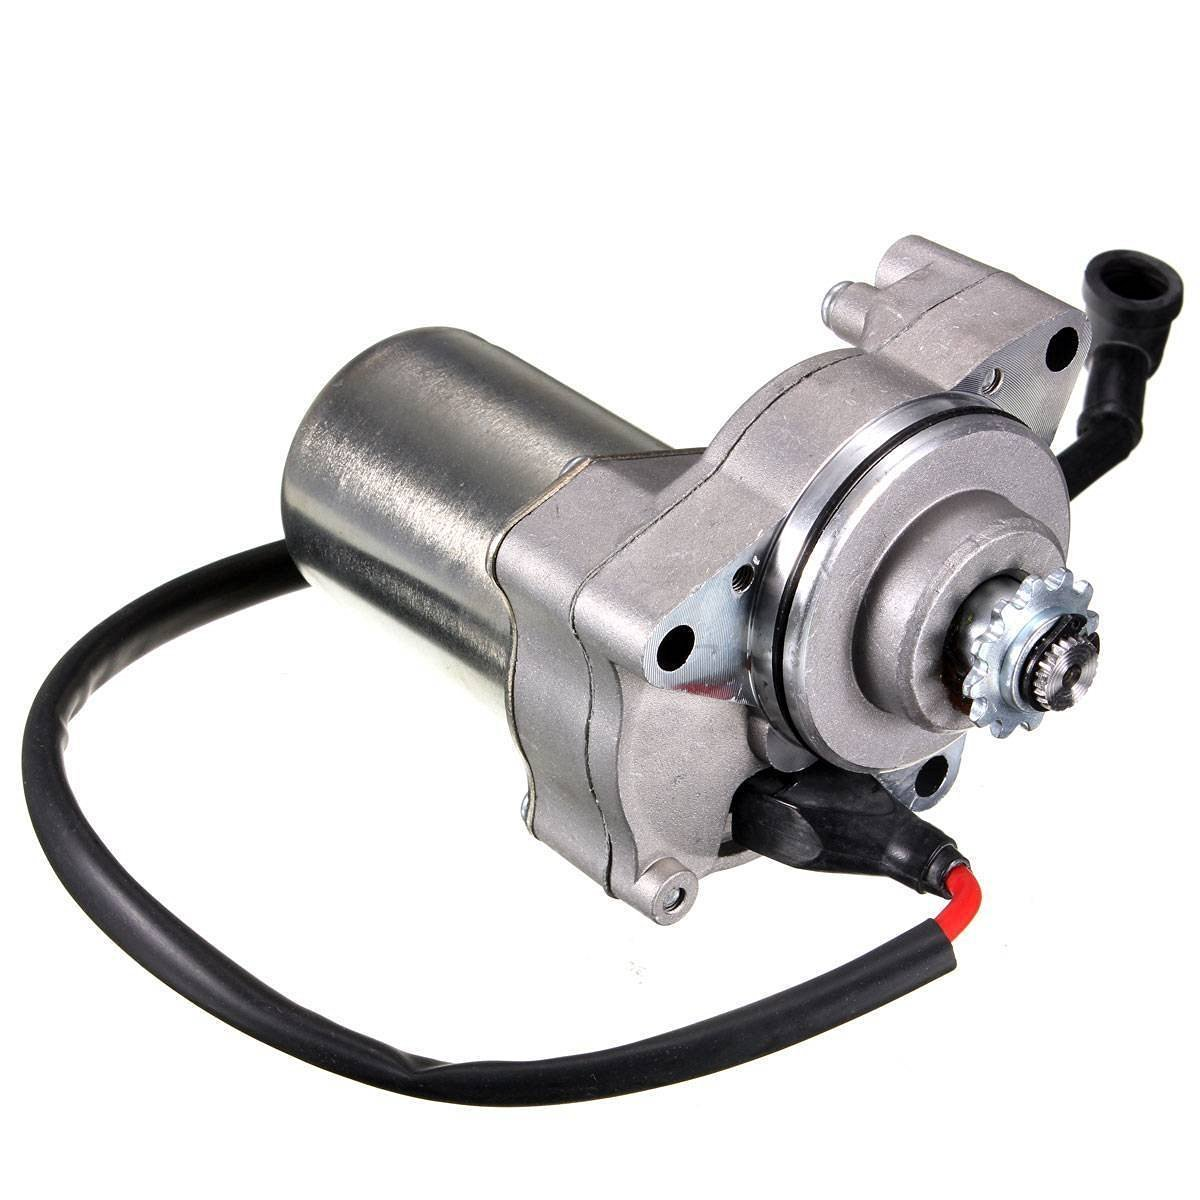 Beehive Filter - 3-Bolt Electric Starter Motor for 50cc, 70cc, 90cc or 110cc 4-Stroke Quad Bikes, ATVs and Pit Bikes